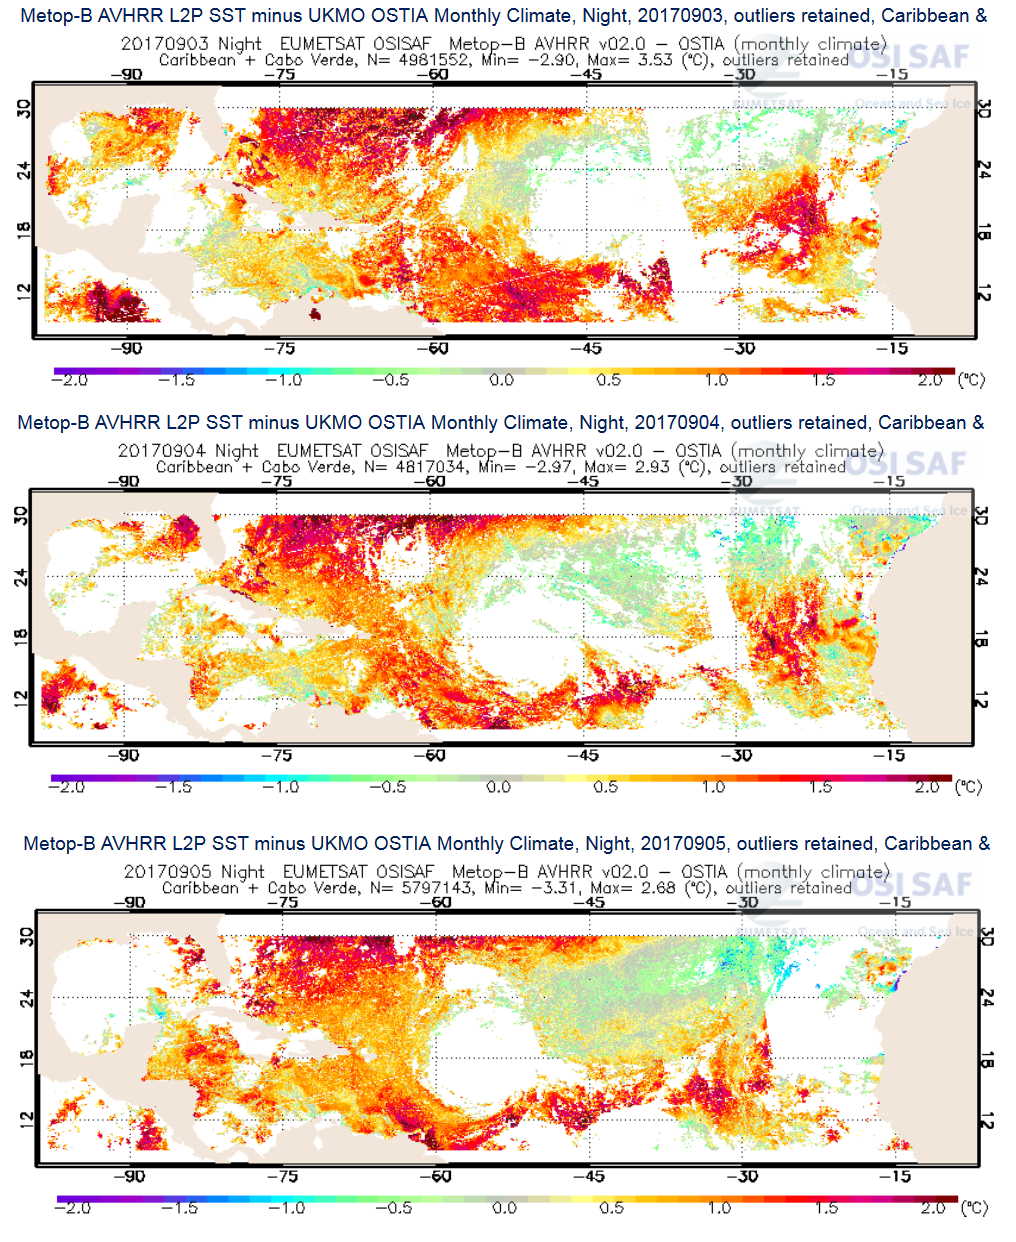 Metop-B AVHRR Sea Surface Temperature (SST) anomaly versus climatology. Source: